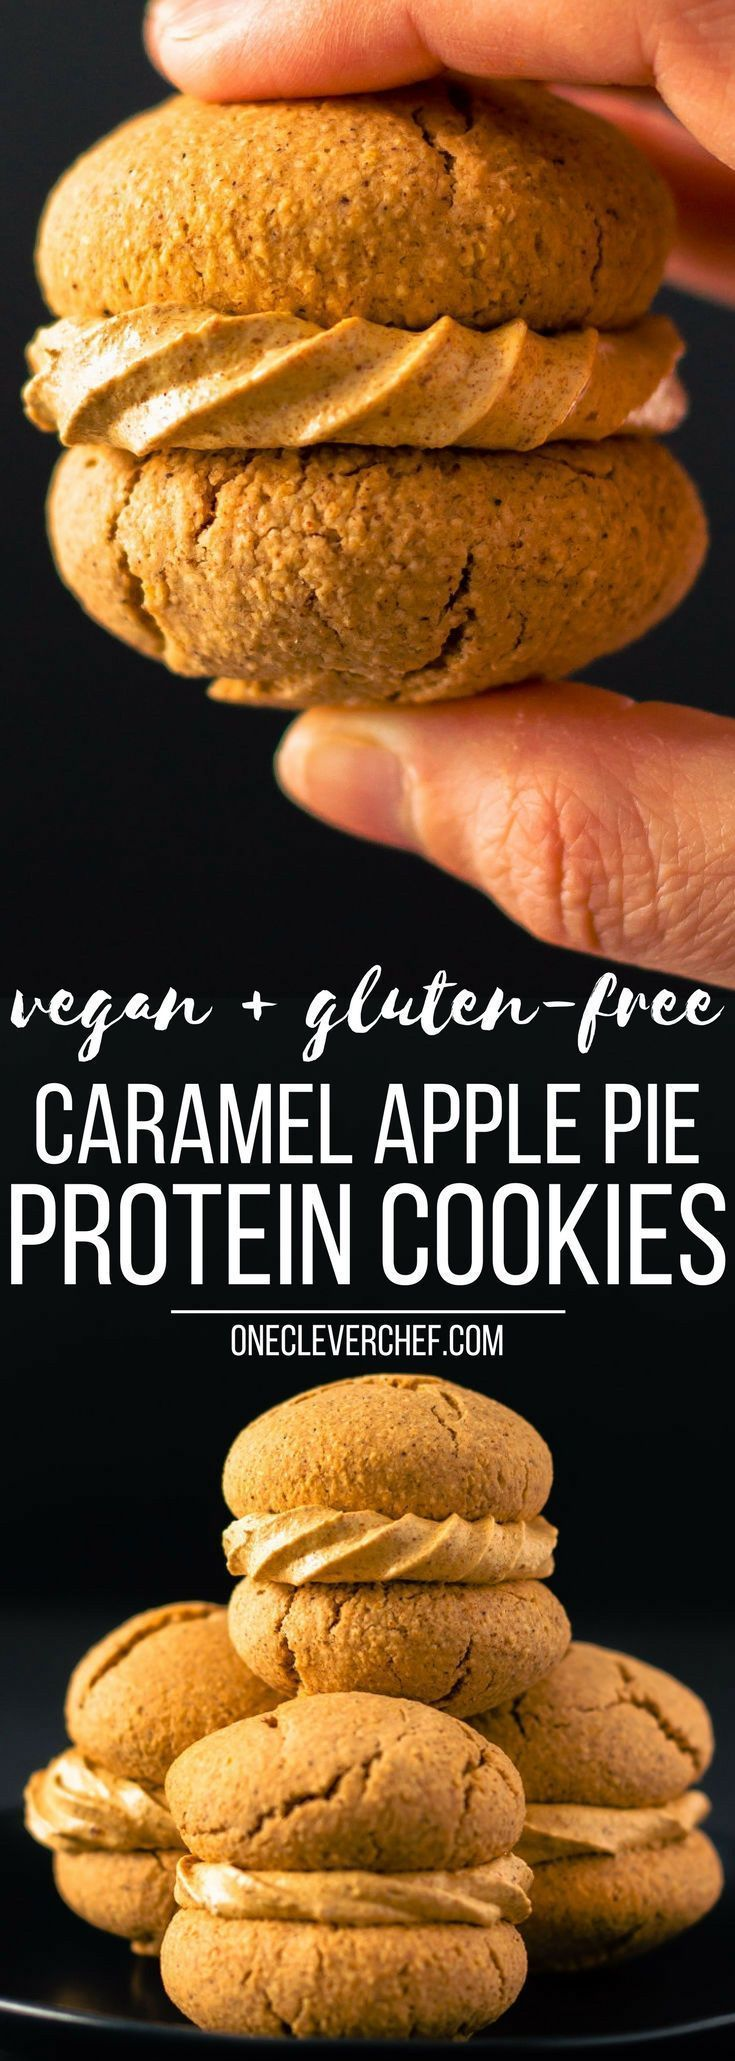 Apple Pie Vegan Protein Cookies with a salted caramel filling! Healthy, simple and naturally sweetened. This recipe is also gluten-free, dairy-free and egg-free. | onecleverchef.com #vegancookies #healthycookies #proteincookies #veganproteinsnack